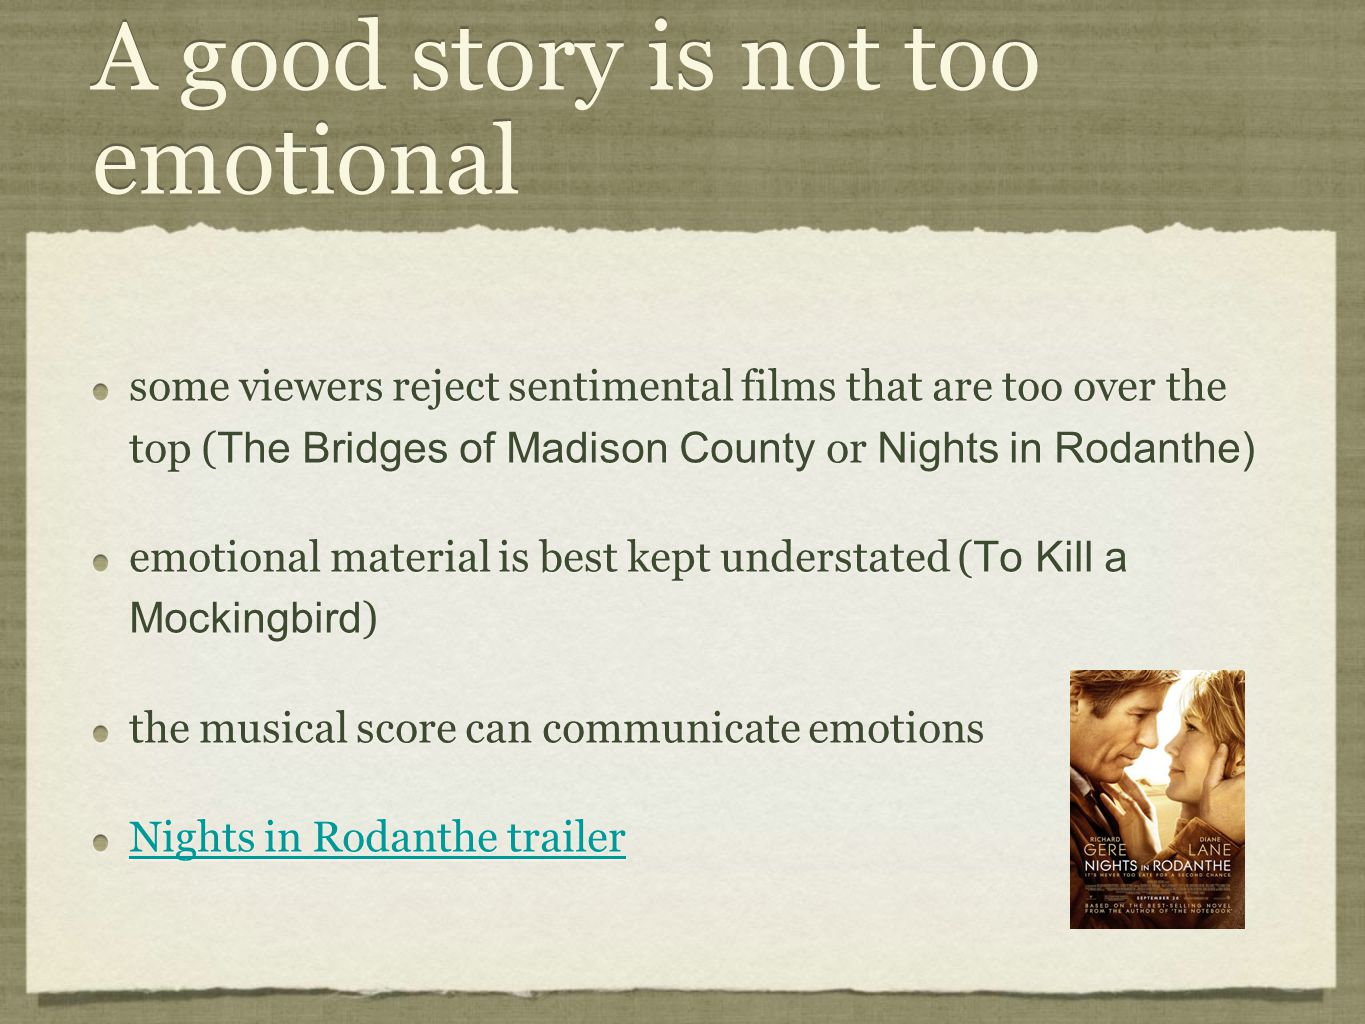 A good story is not too emotional some viewers reject sentimental films that are too over the top ( The Bridges of Madison County or Nights in Rodanthe) emotional material is best kept understated ( To Kill a Mockingbird ) the musical score can communicate emotions Nights in Rodanthe trailer some viewers reject sentimental films that are too over the top ( The Bridges of Madison County or Nights in Rodanthe) emotional material is best kept understated ( To Kill a Mockingbird ) the musical score can communicate emotions Nights in Rodanthe trailer